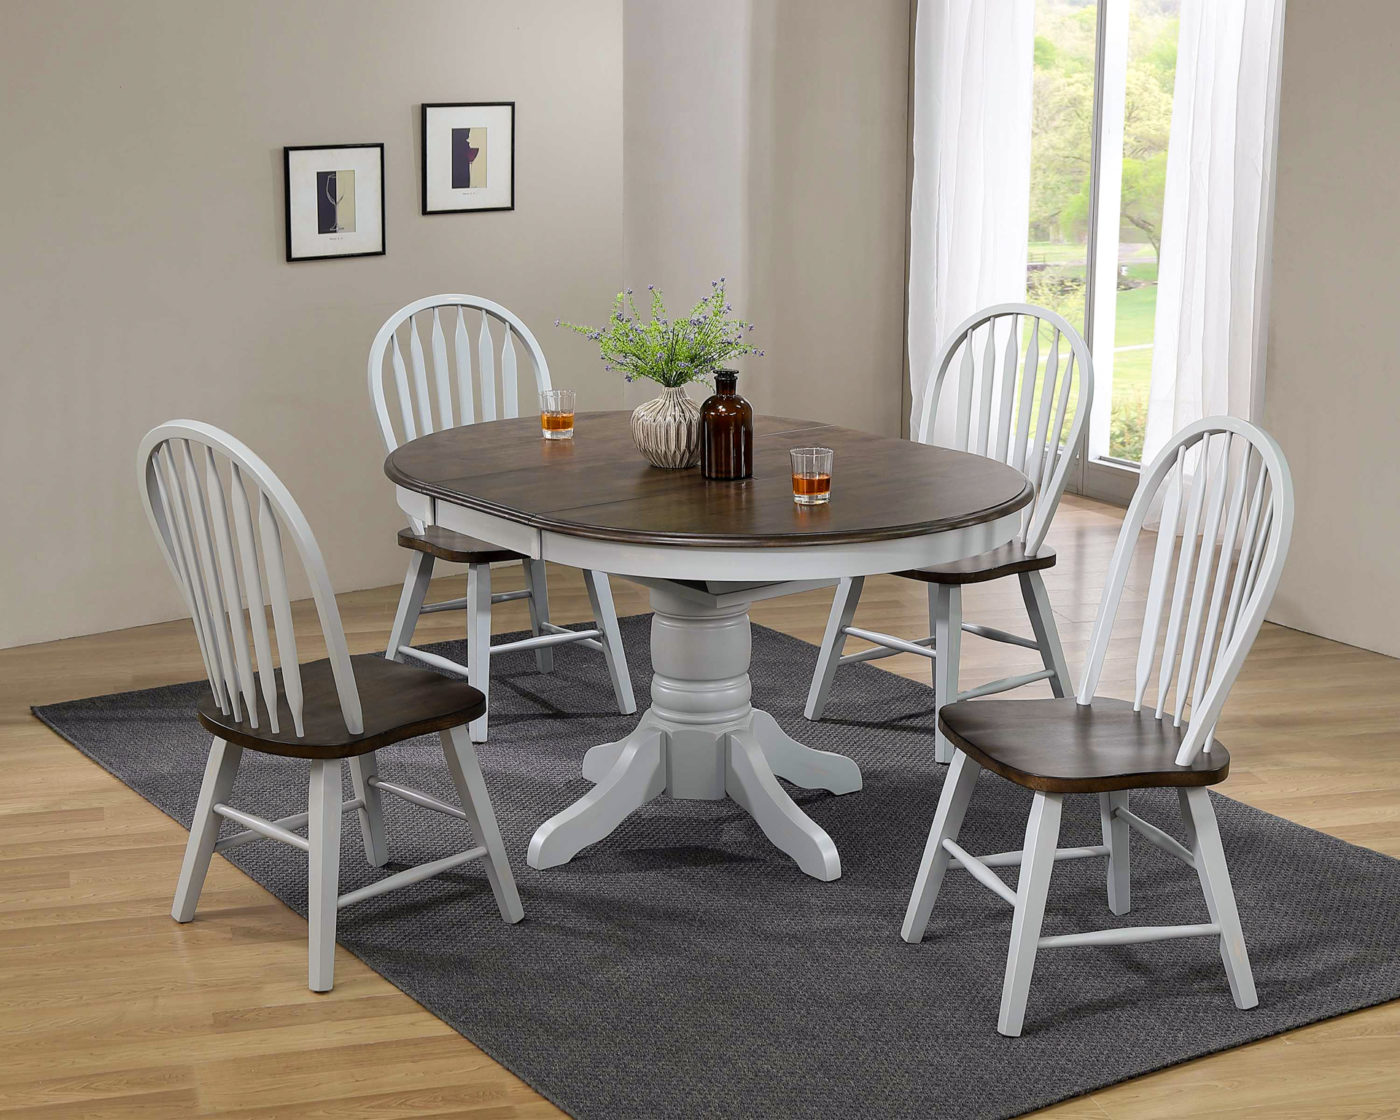 classy dining room furniture